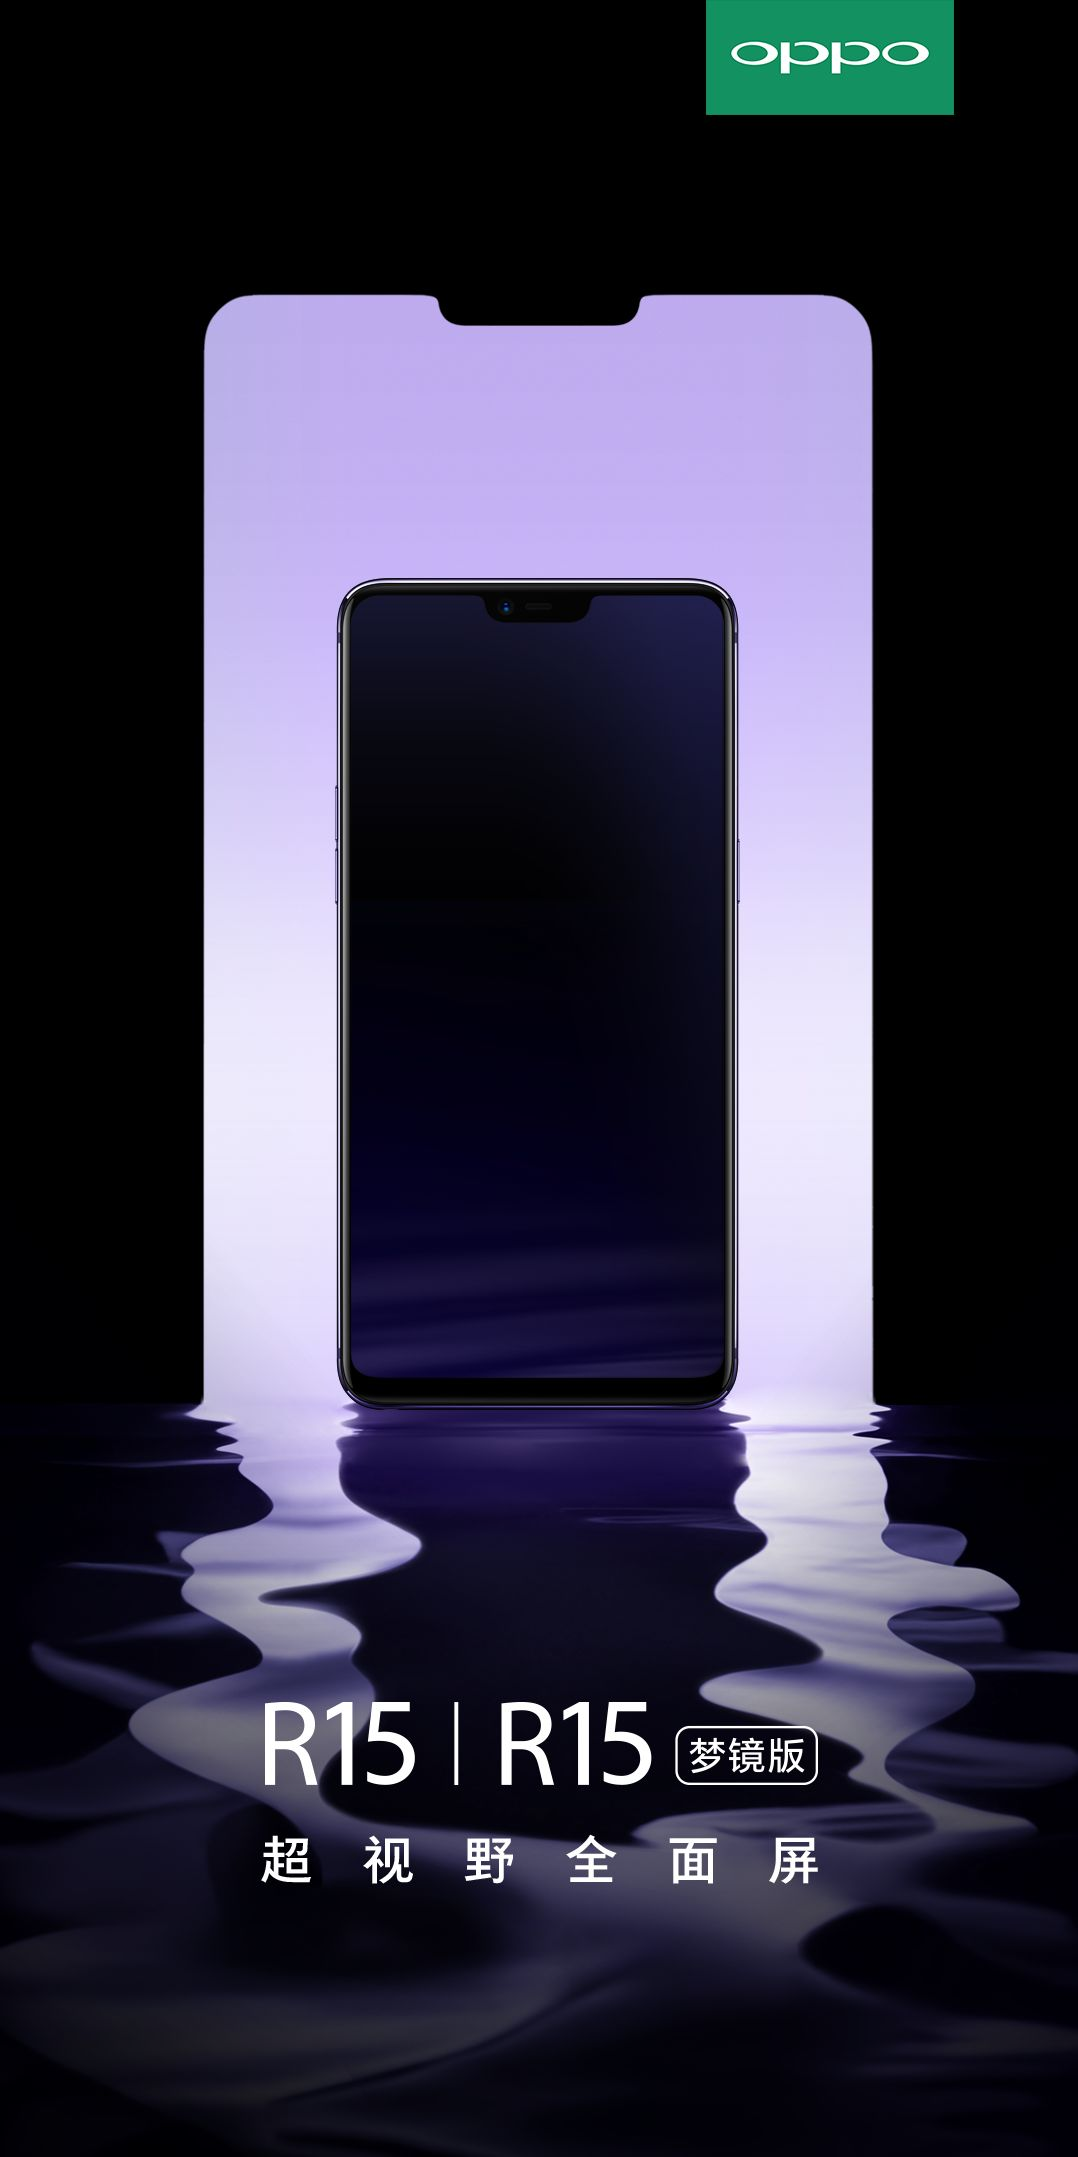 OPPO R15 Official Poster Released – iPhone X Like Notch Included